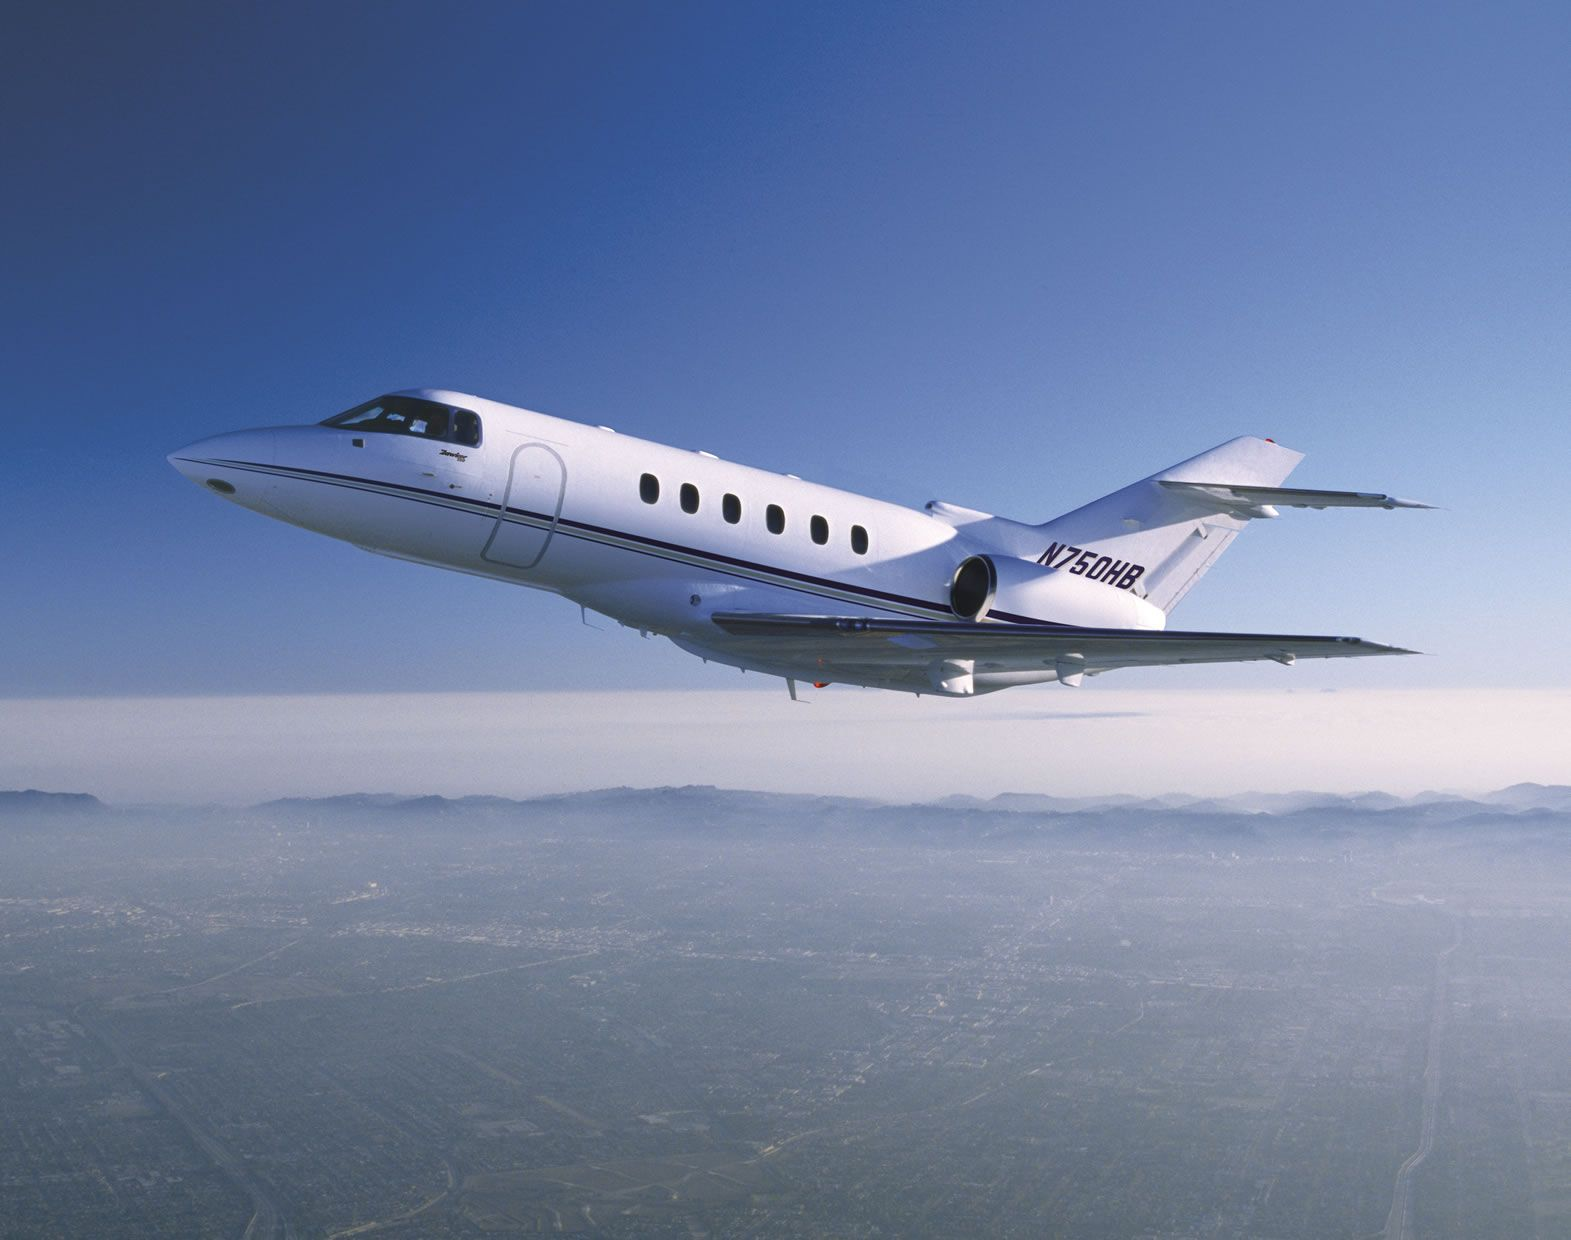 The Hawker 750750XP Private Jet Is A Midsized Executive Jet Produced By The